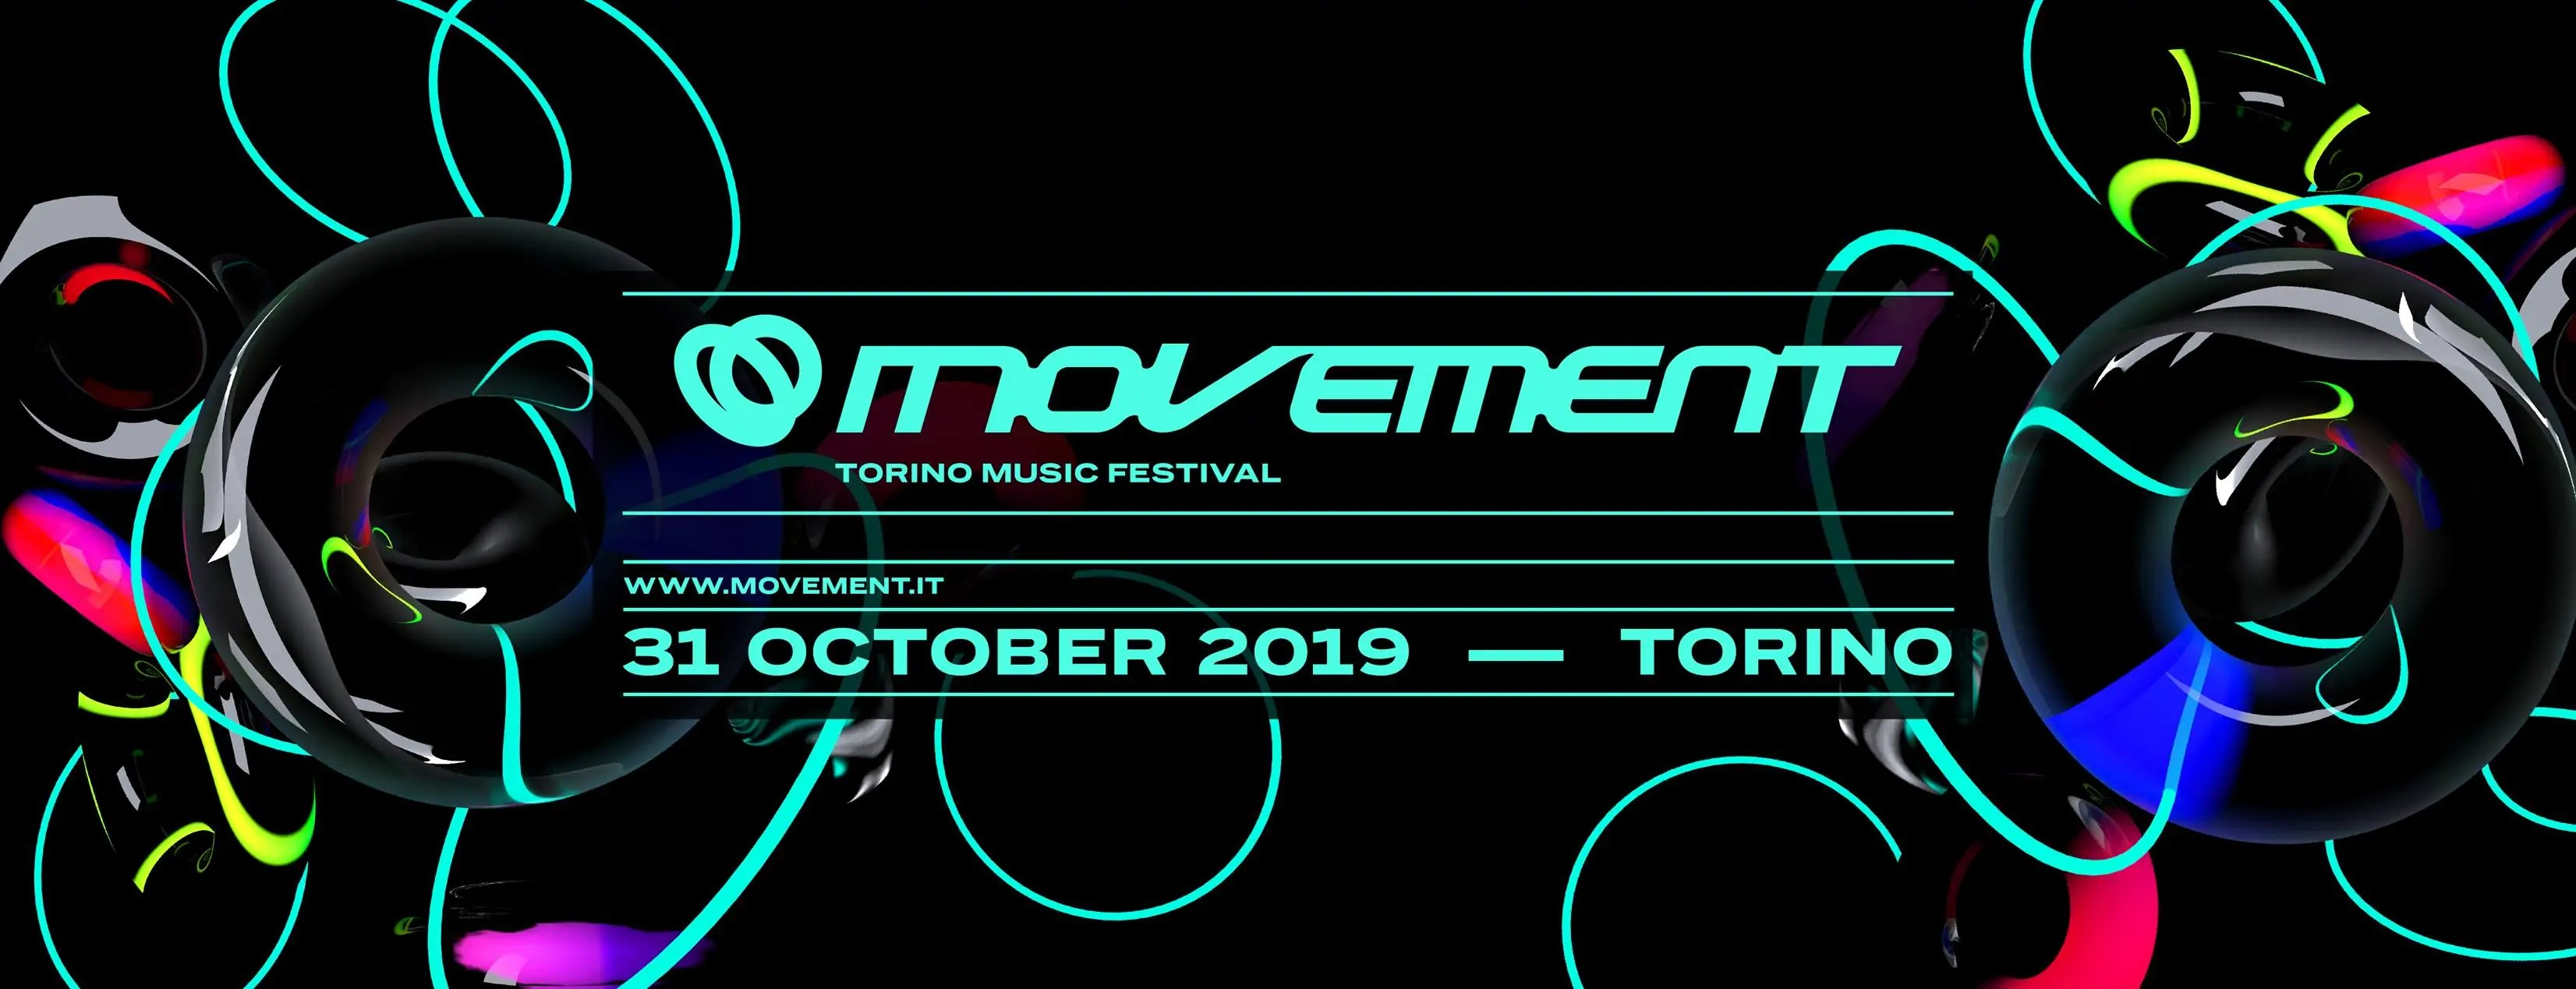 Movement Torino Music Festival 2019